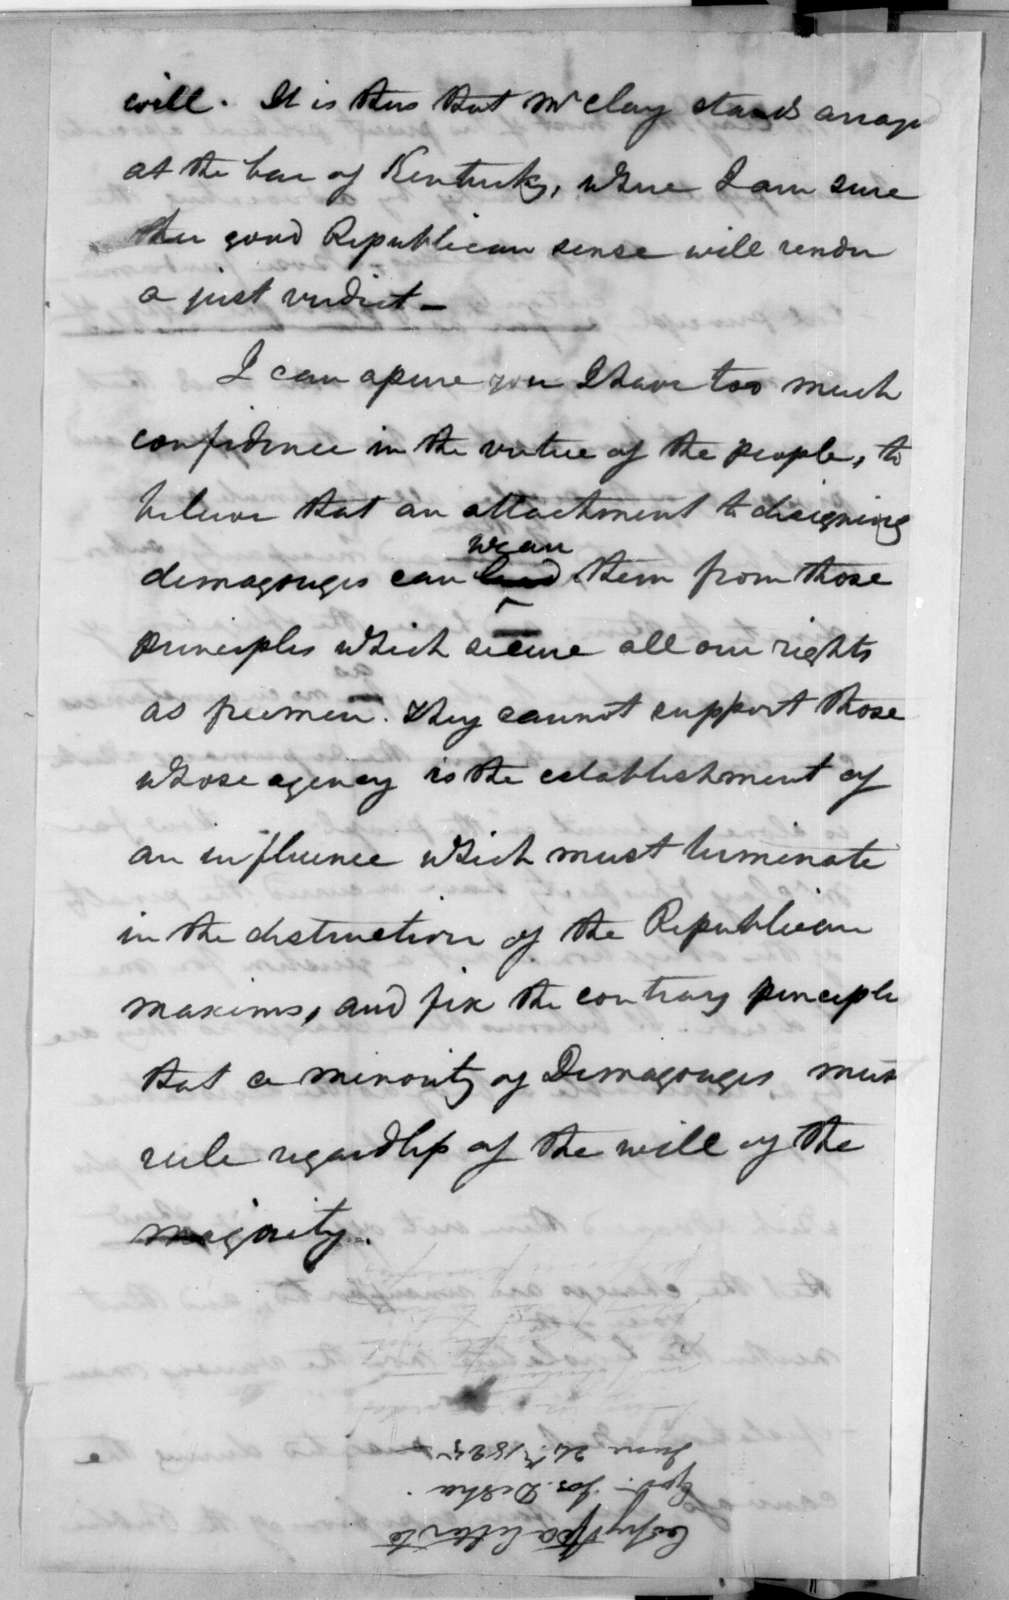 Andrew Jackson to Joseph Desha, June 24, 1825